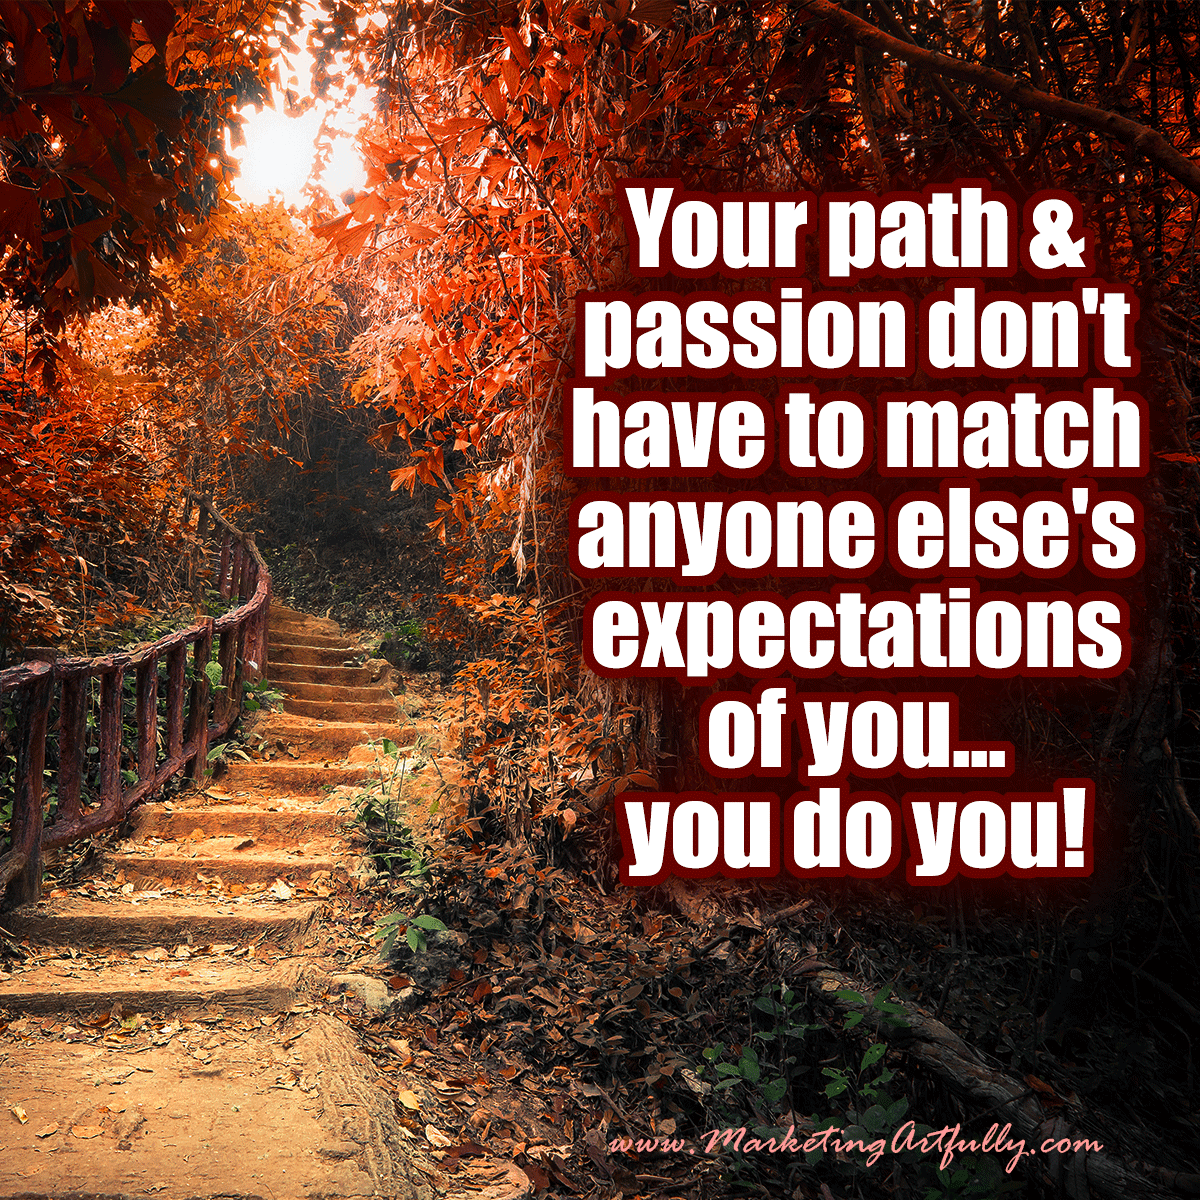 Your path and passion don't have to match anyone else's expectations of you... you do you! #quotes #markeitngartfully